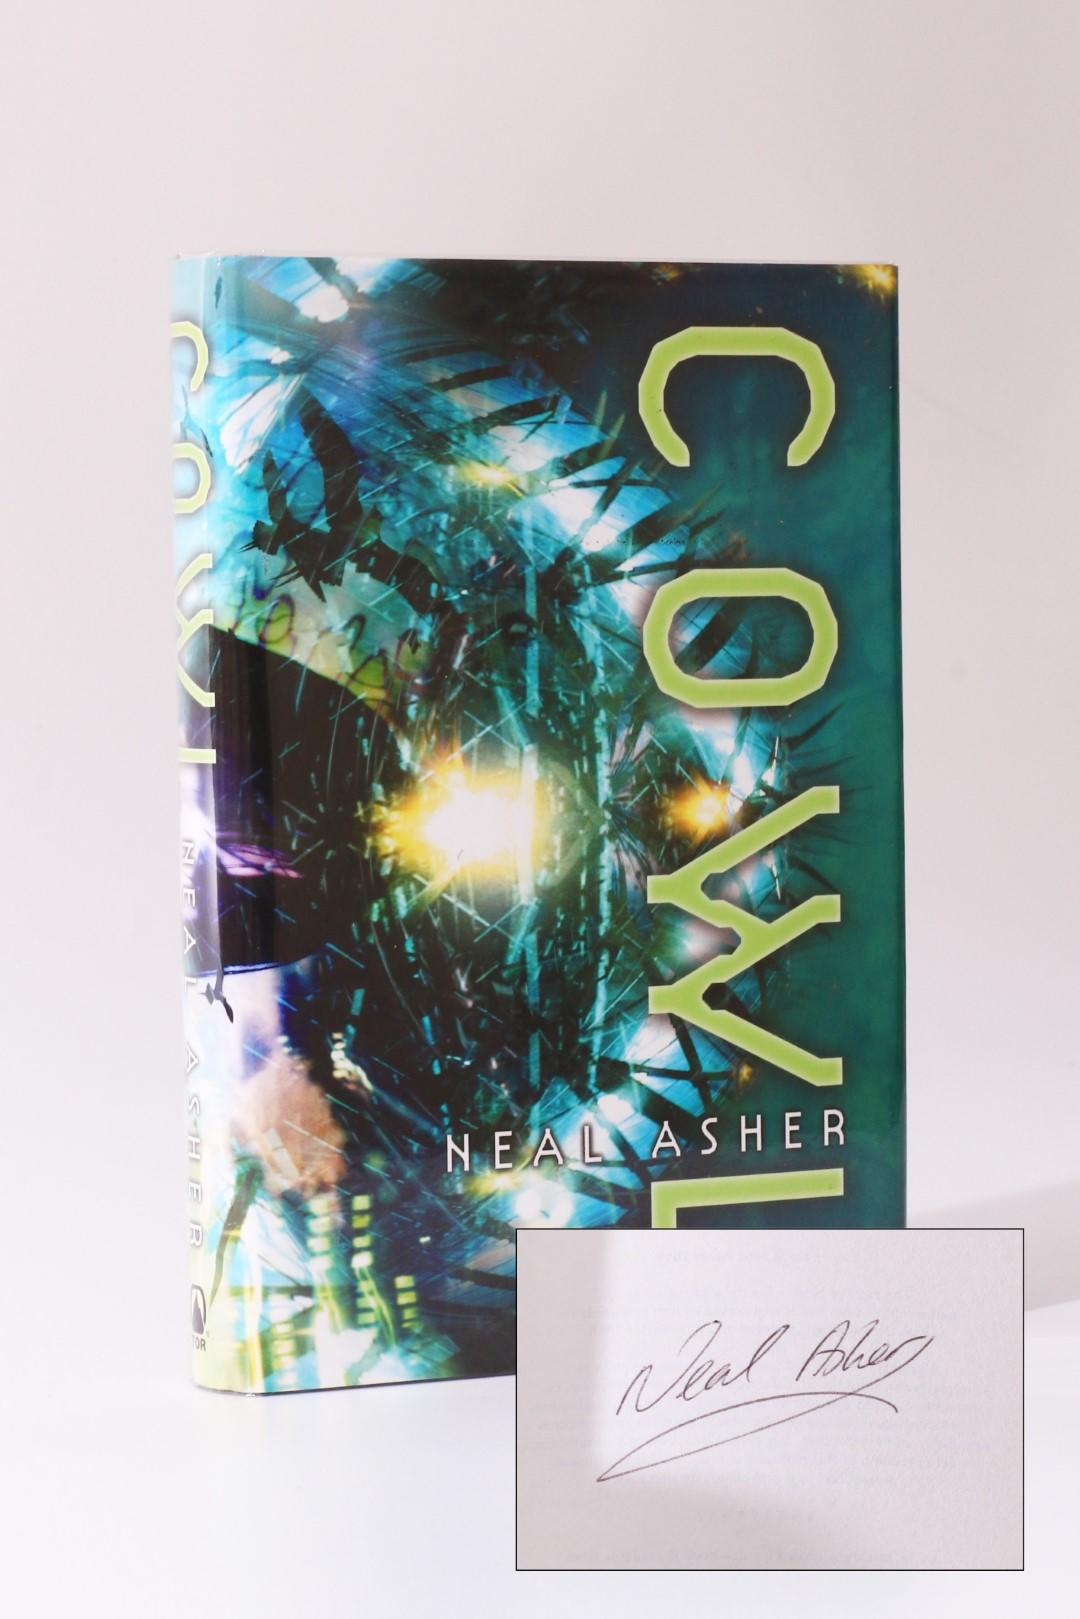 Neal Asher - Cowl - Tor, 2004, First Edition.